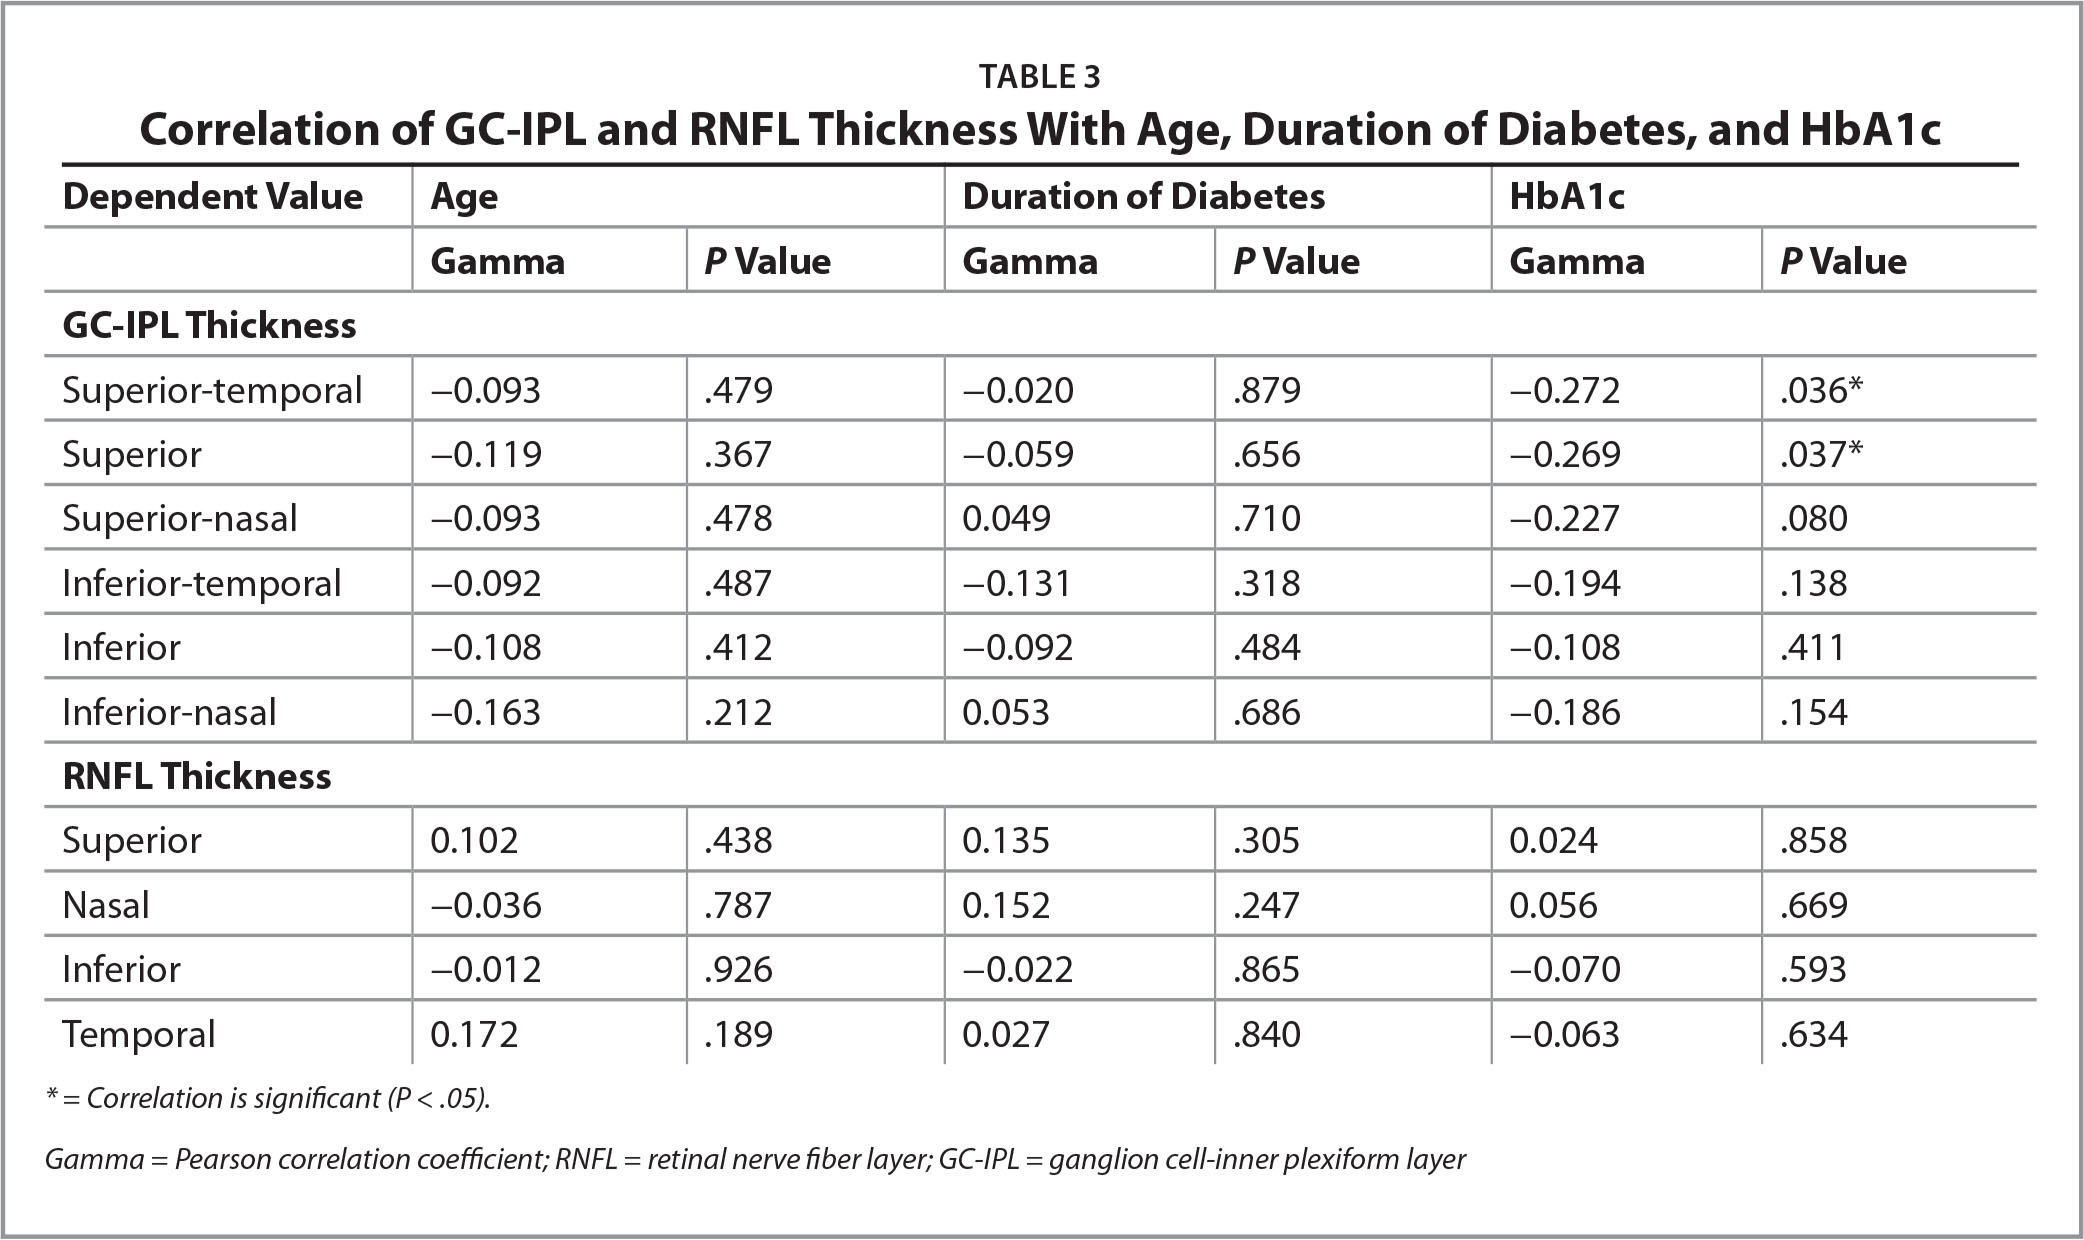 Correlation of GC-IPL and RNFL Thickness With Age, Duration of Diabetes, and HbA1c